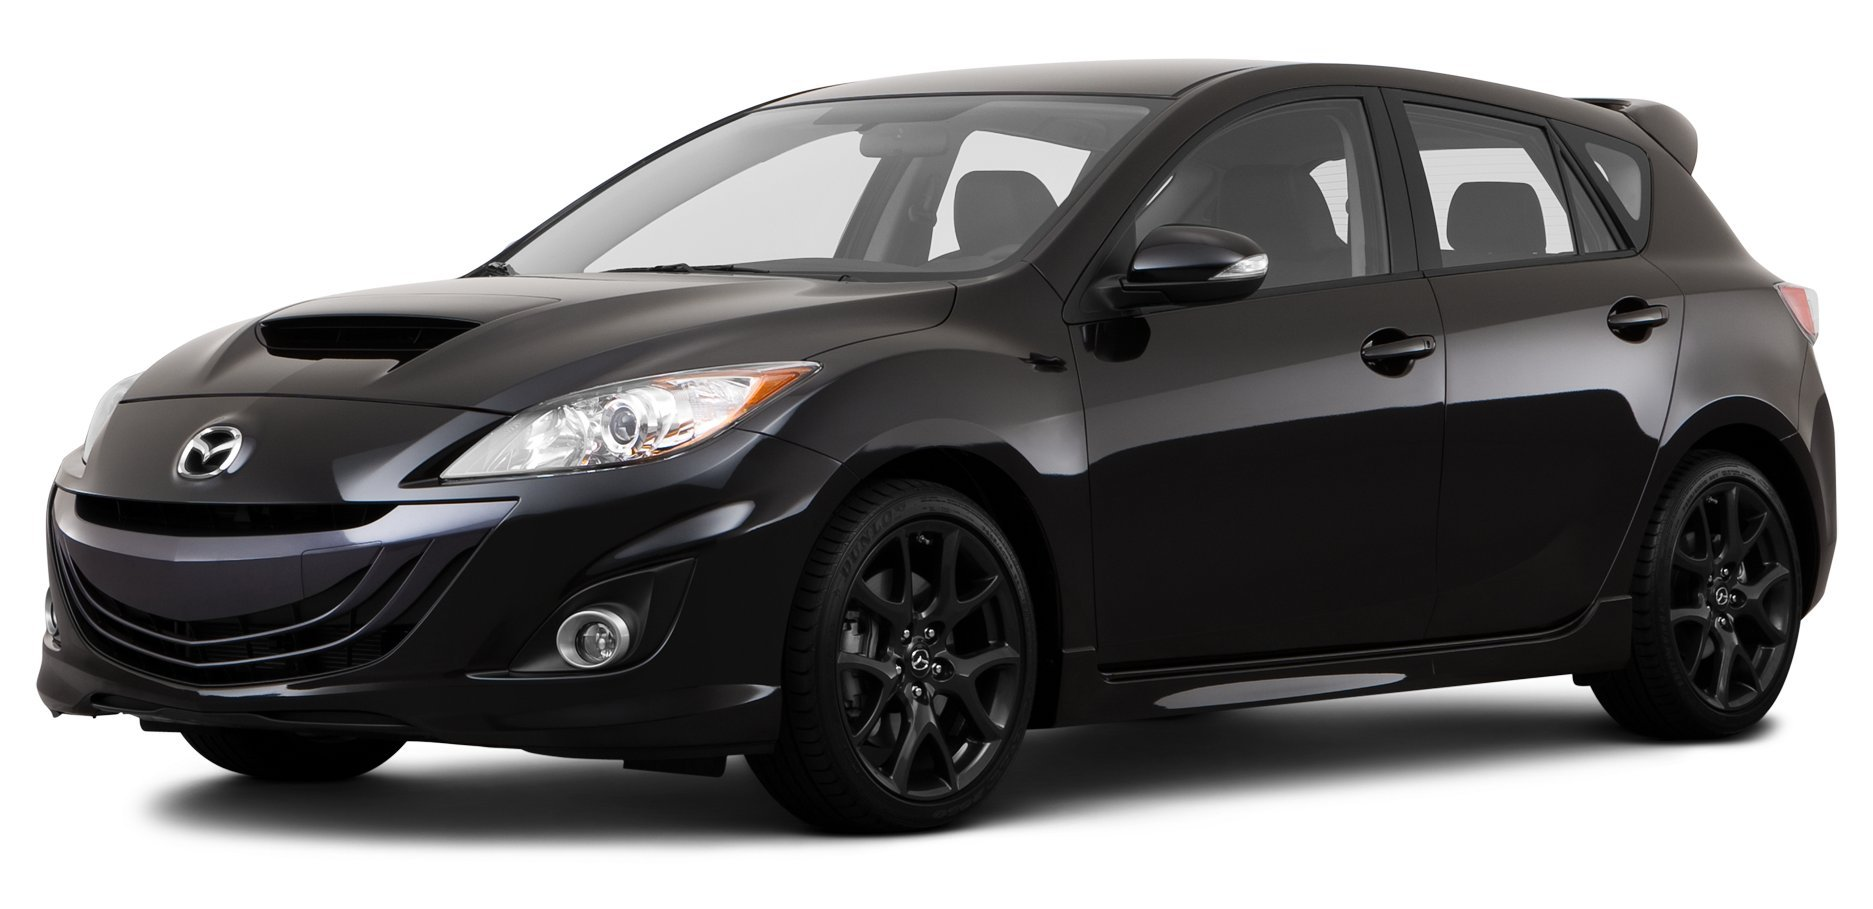 Lovely 2013 Mazda 3 Mazdaspeed3 Touring, 5 Door Hatchback Manual Transmission ...